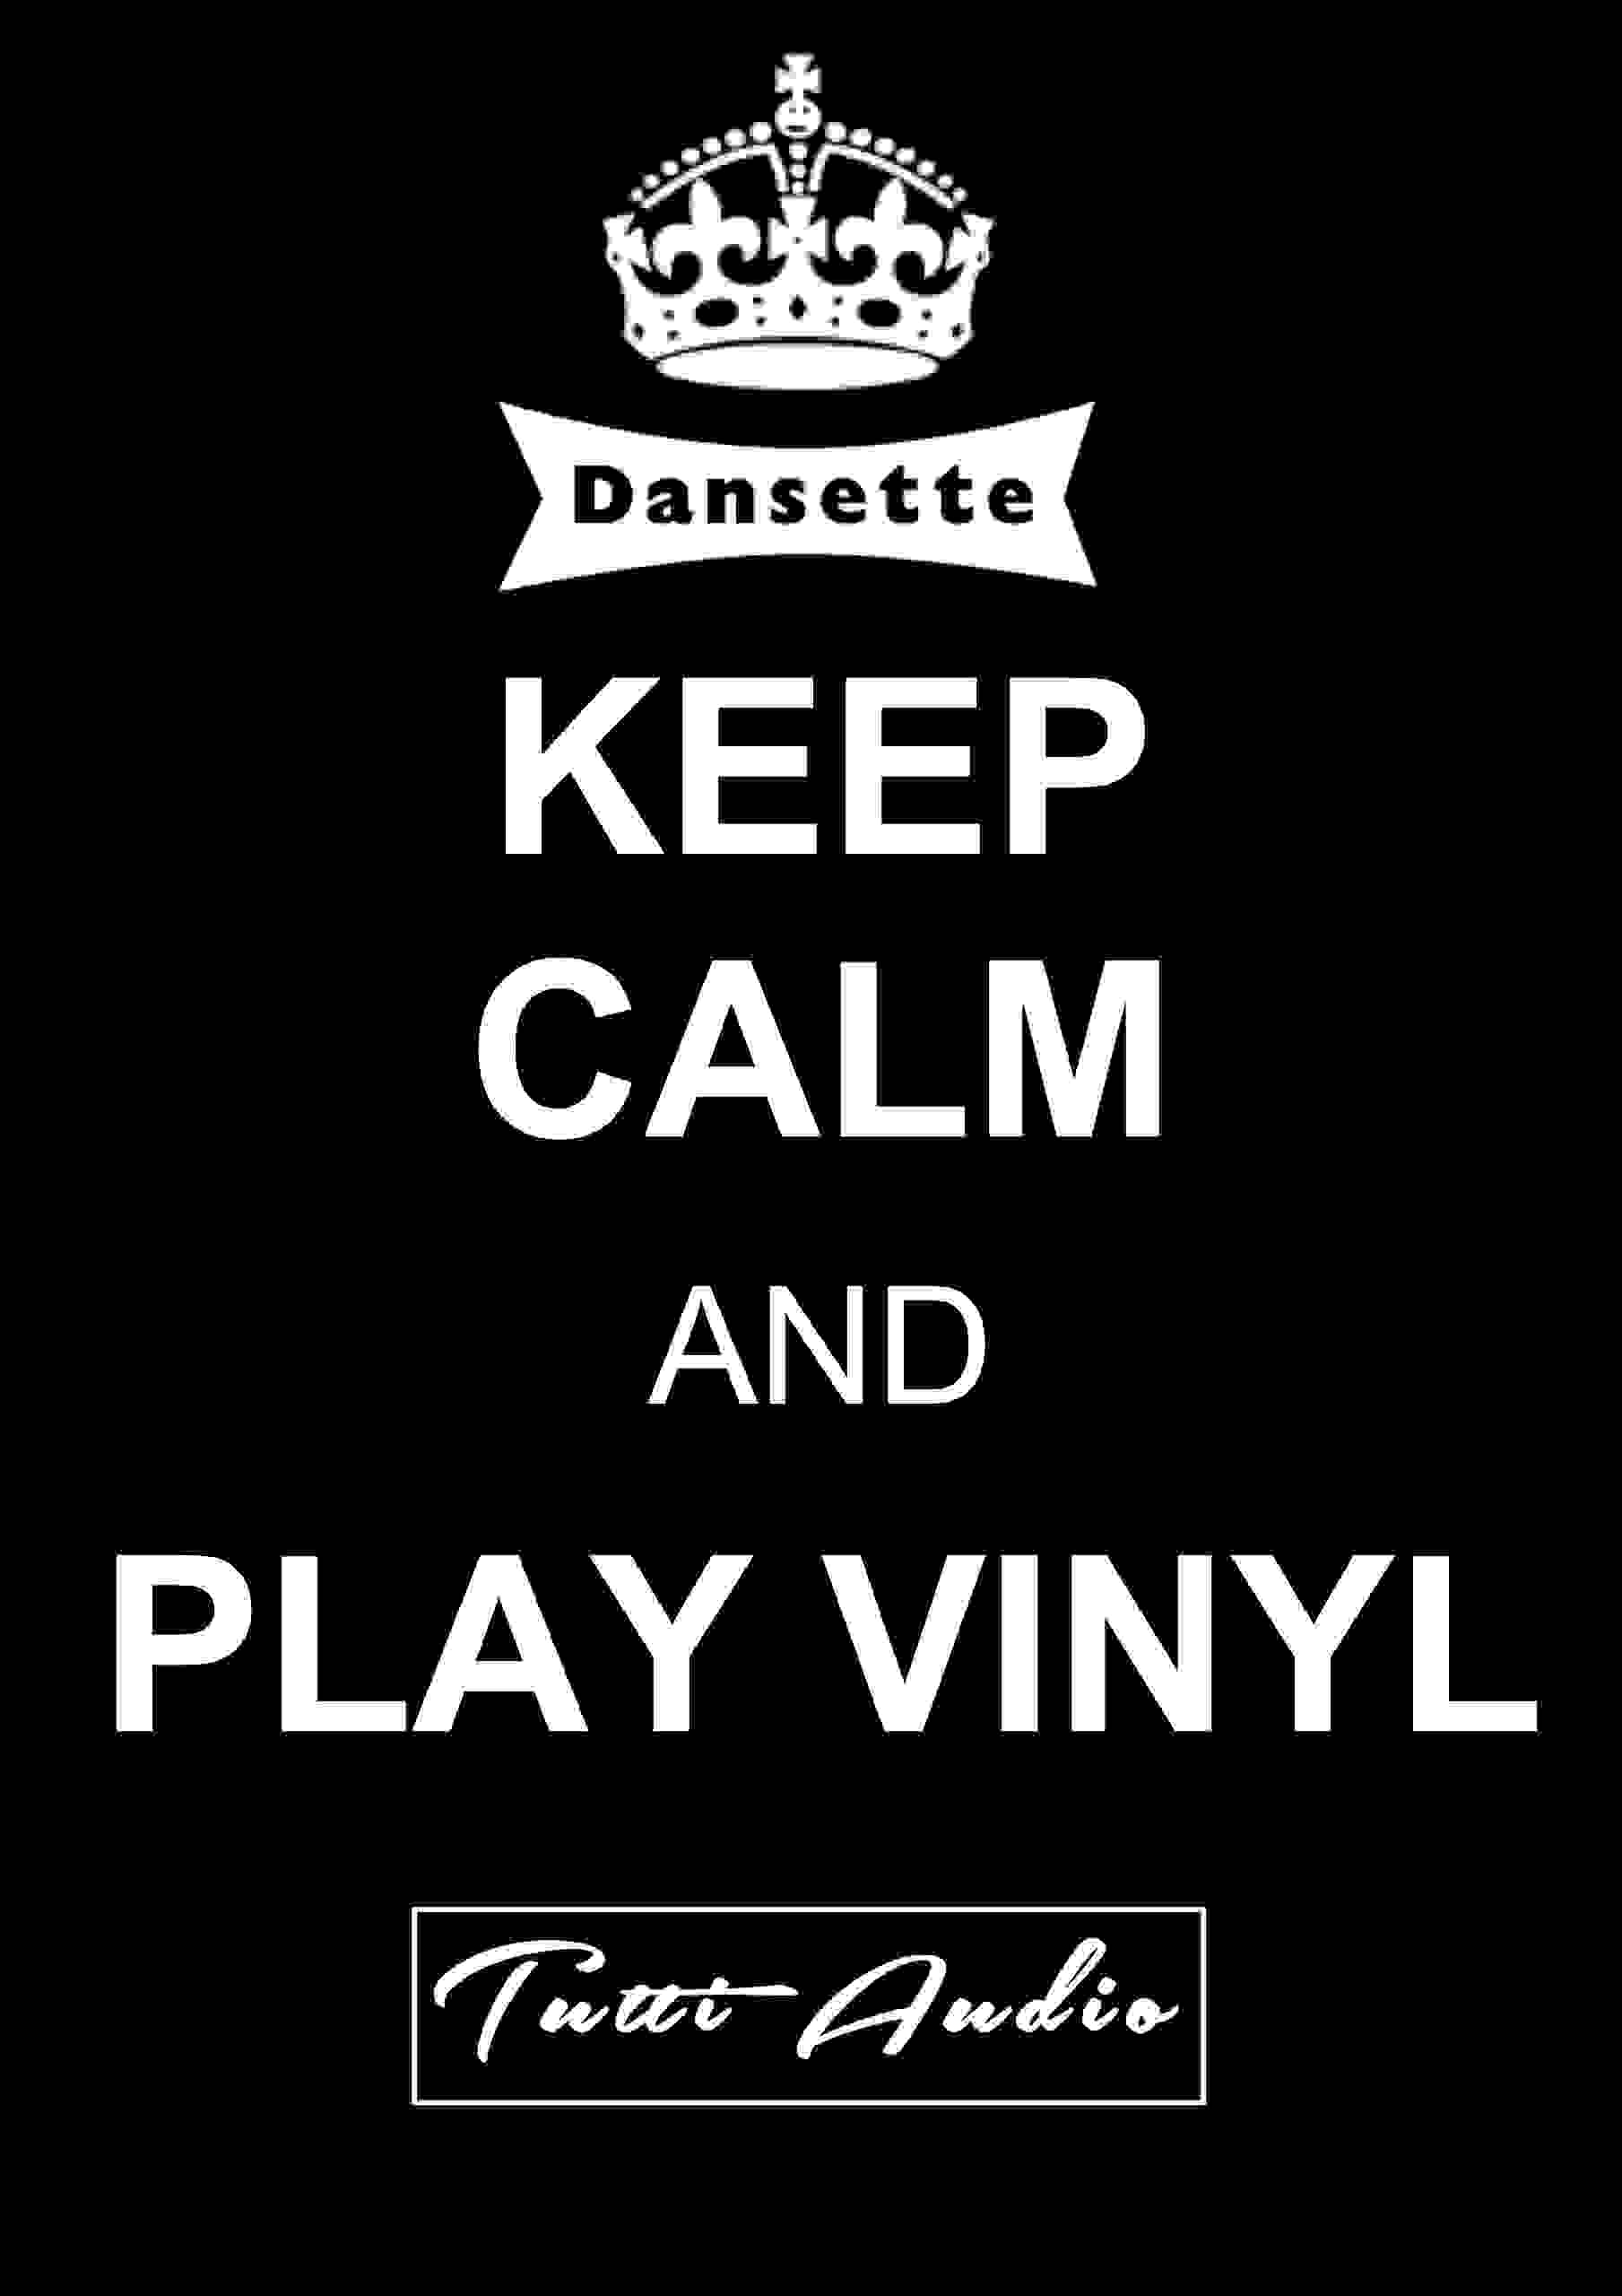 Keep Calm and enjoy a Dansette record player from Tutti Audio